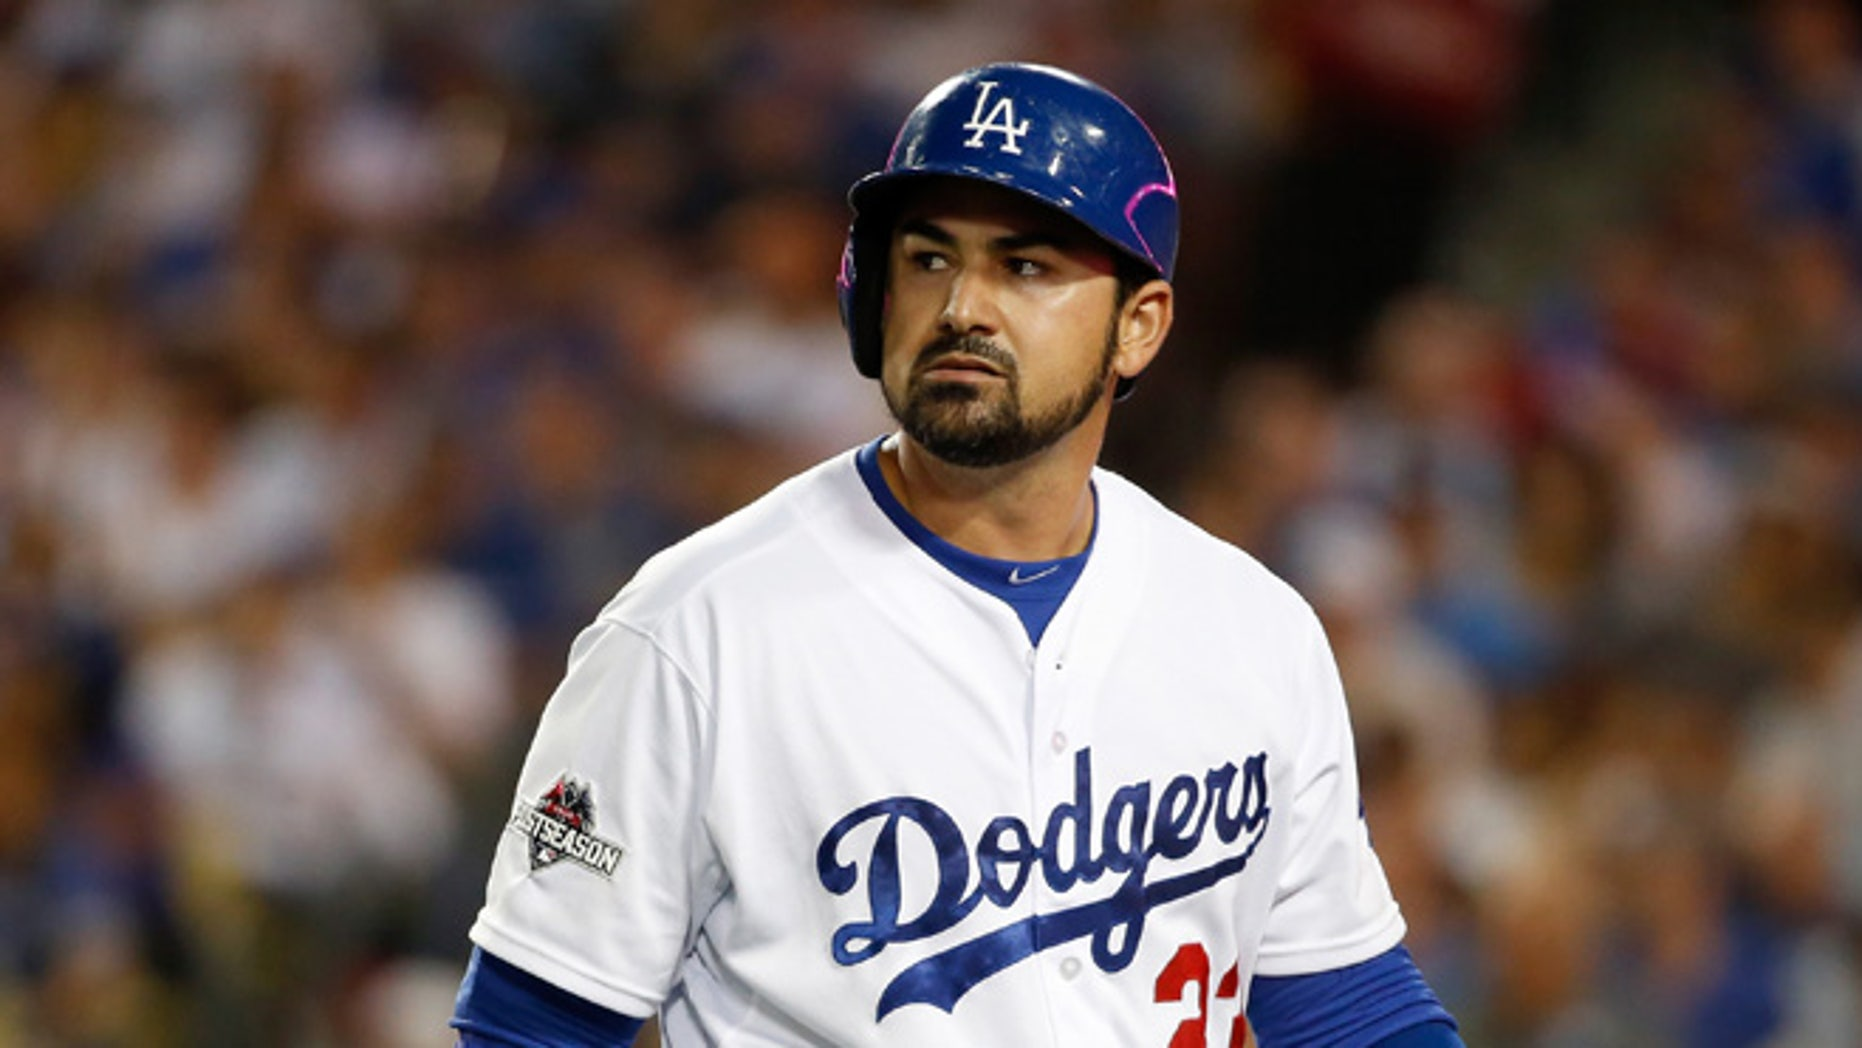 Adrian Gonzalez of the Los Angeles Dodgers reacts after striking out in the fifth inning against the New York Mets in game five of the National League Division Series at Dodger Stadium on October 15, 2015 in Los Angeles, California.  (Photo by Sean M. Haffey/Getty Images)